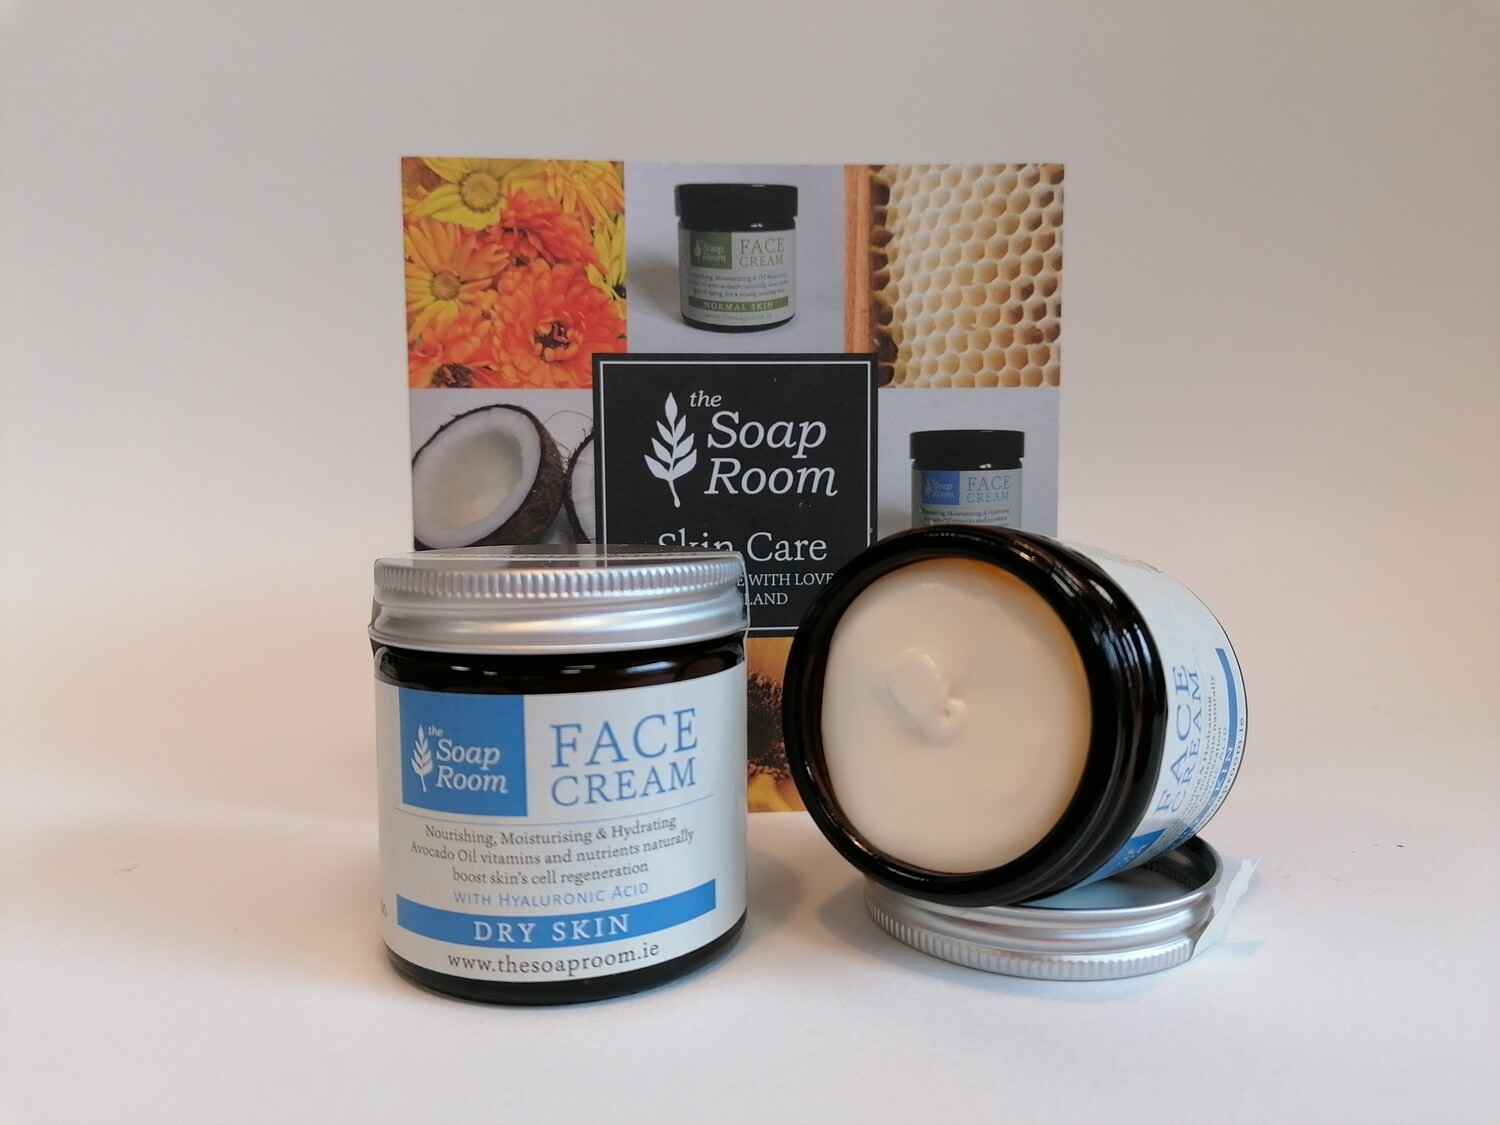 The Soap Room Dry Skin Face Cream